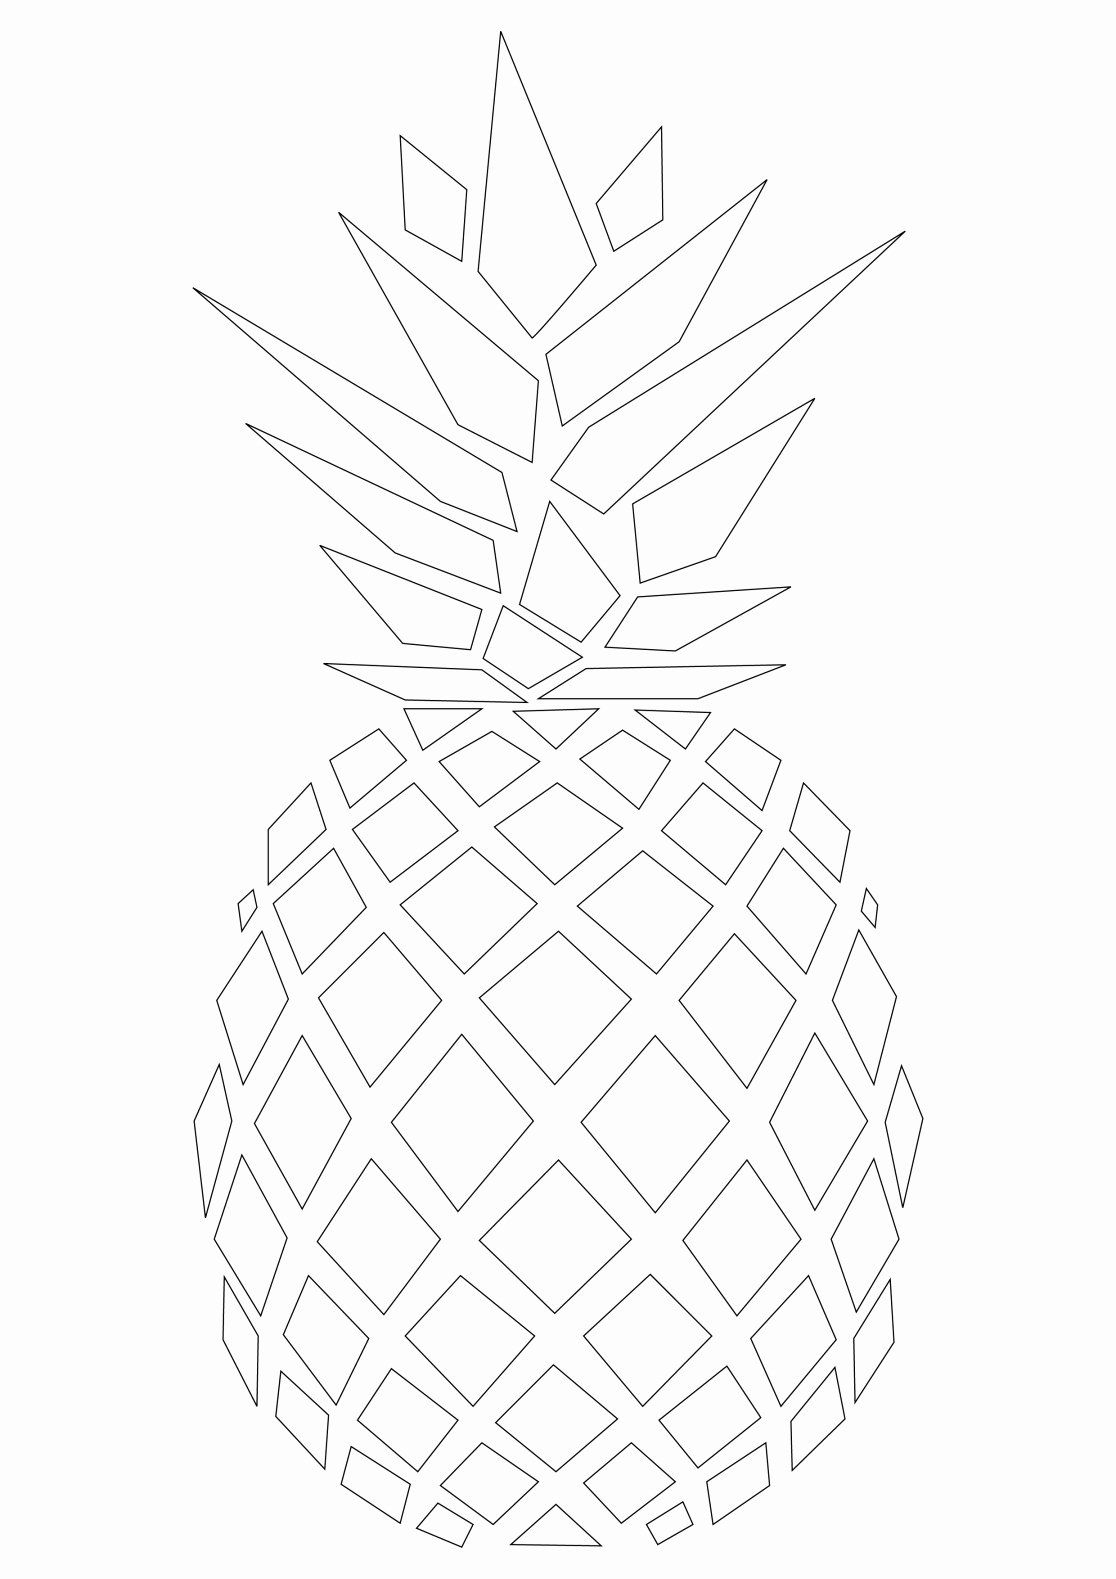 Fruits Coloring Sheets Free Printable In 2020 | Pineapple